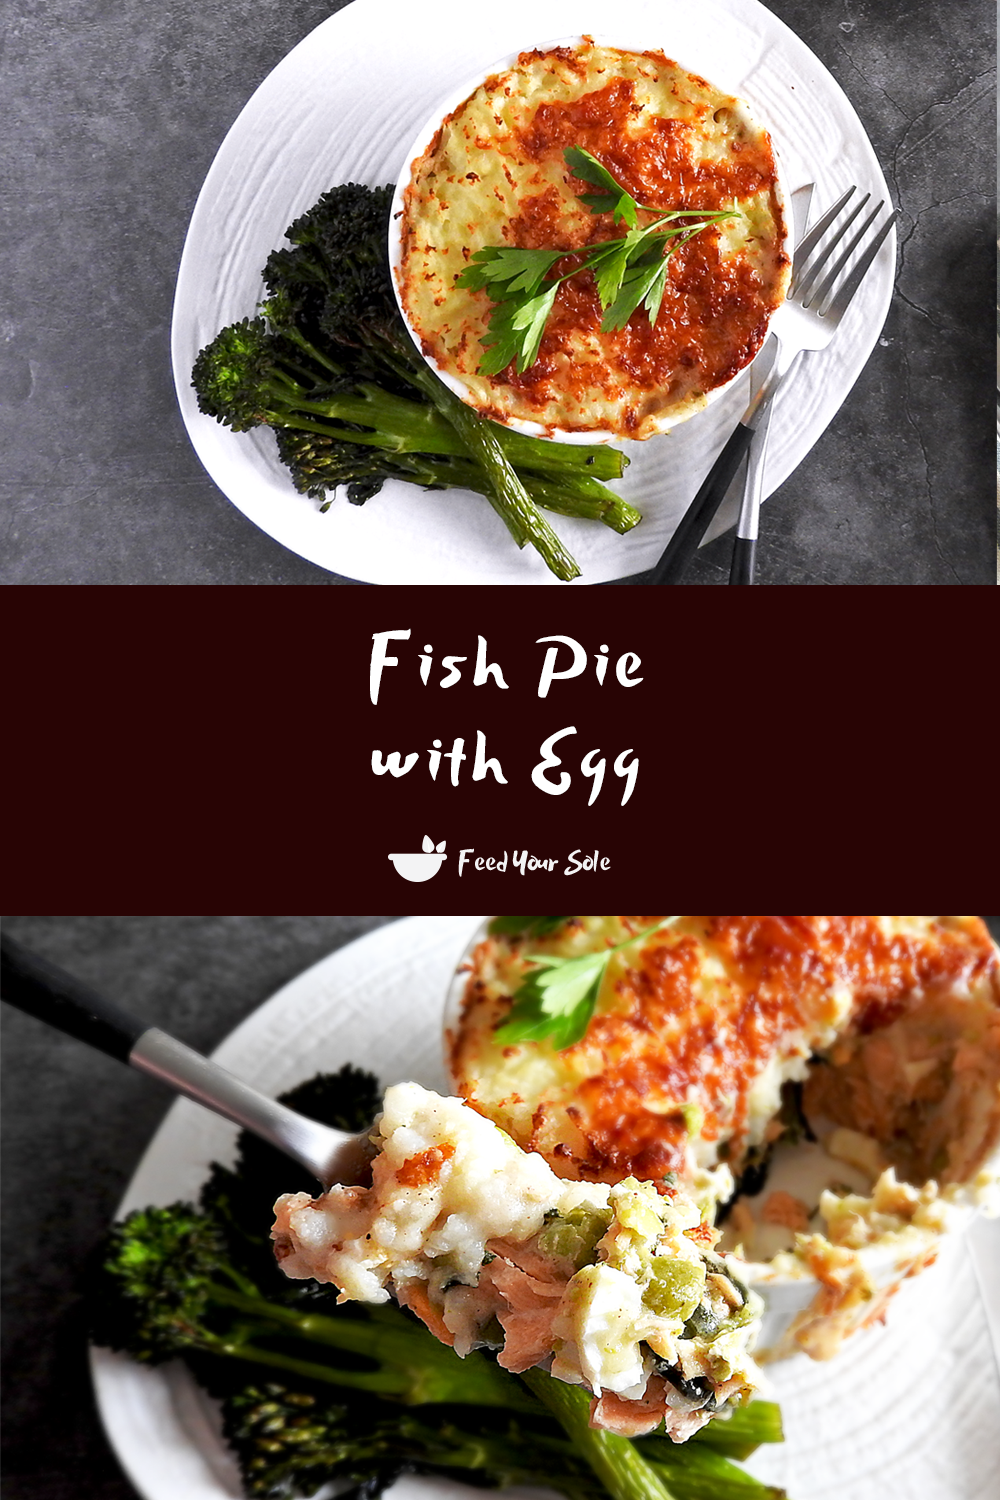 Fish Pie With Egg Recipe Feed Your Sole Recipe In 2020 Recipes Pan Fried Fish Recipes Fried Fish Recipes